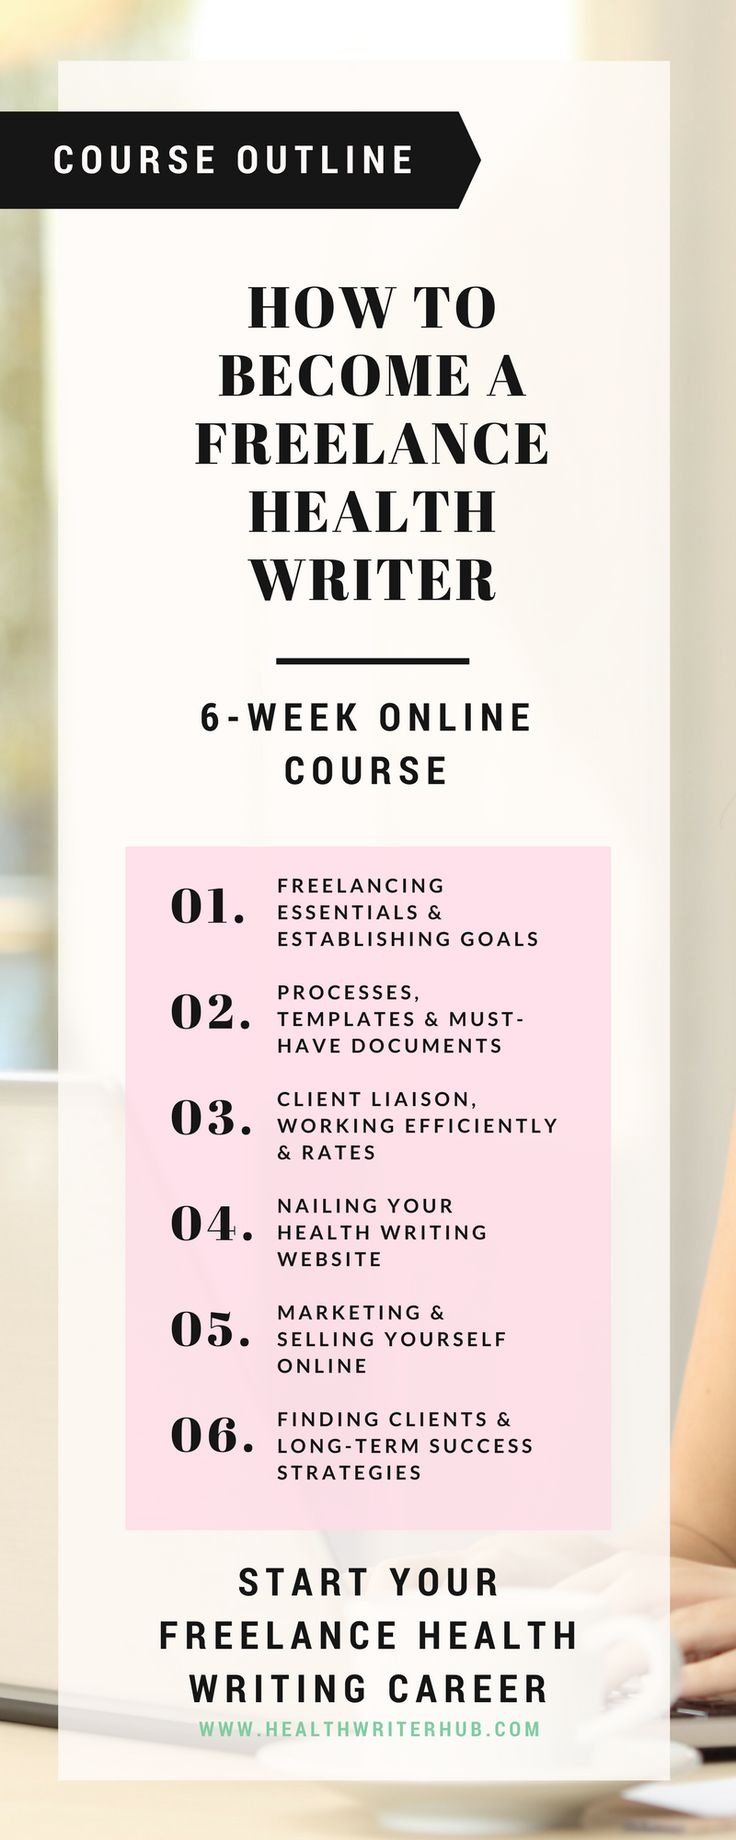 Learn how to set up a successful freelance health writing business in with my freelance health & medical writing course.